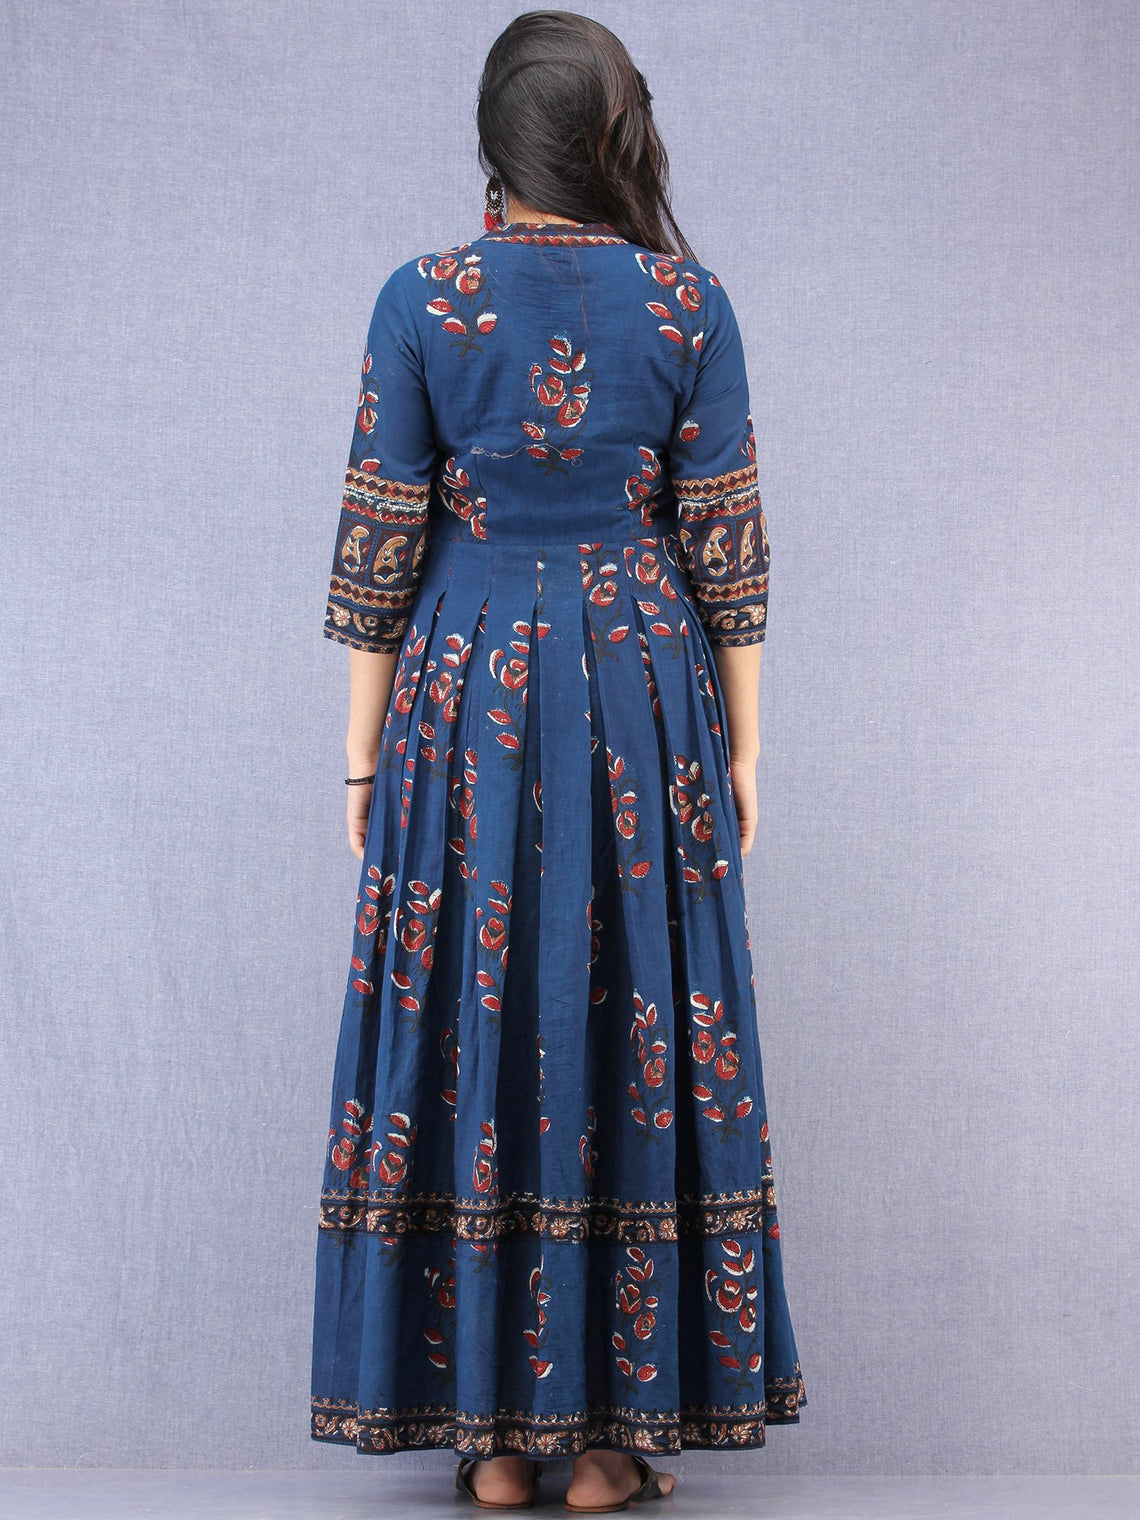 Roheen - Hand Block Printed Long Cotton Box Pleated Embroidered Jacket Dress - DS98F001